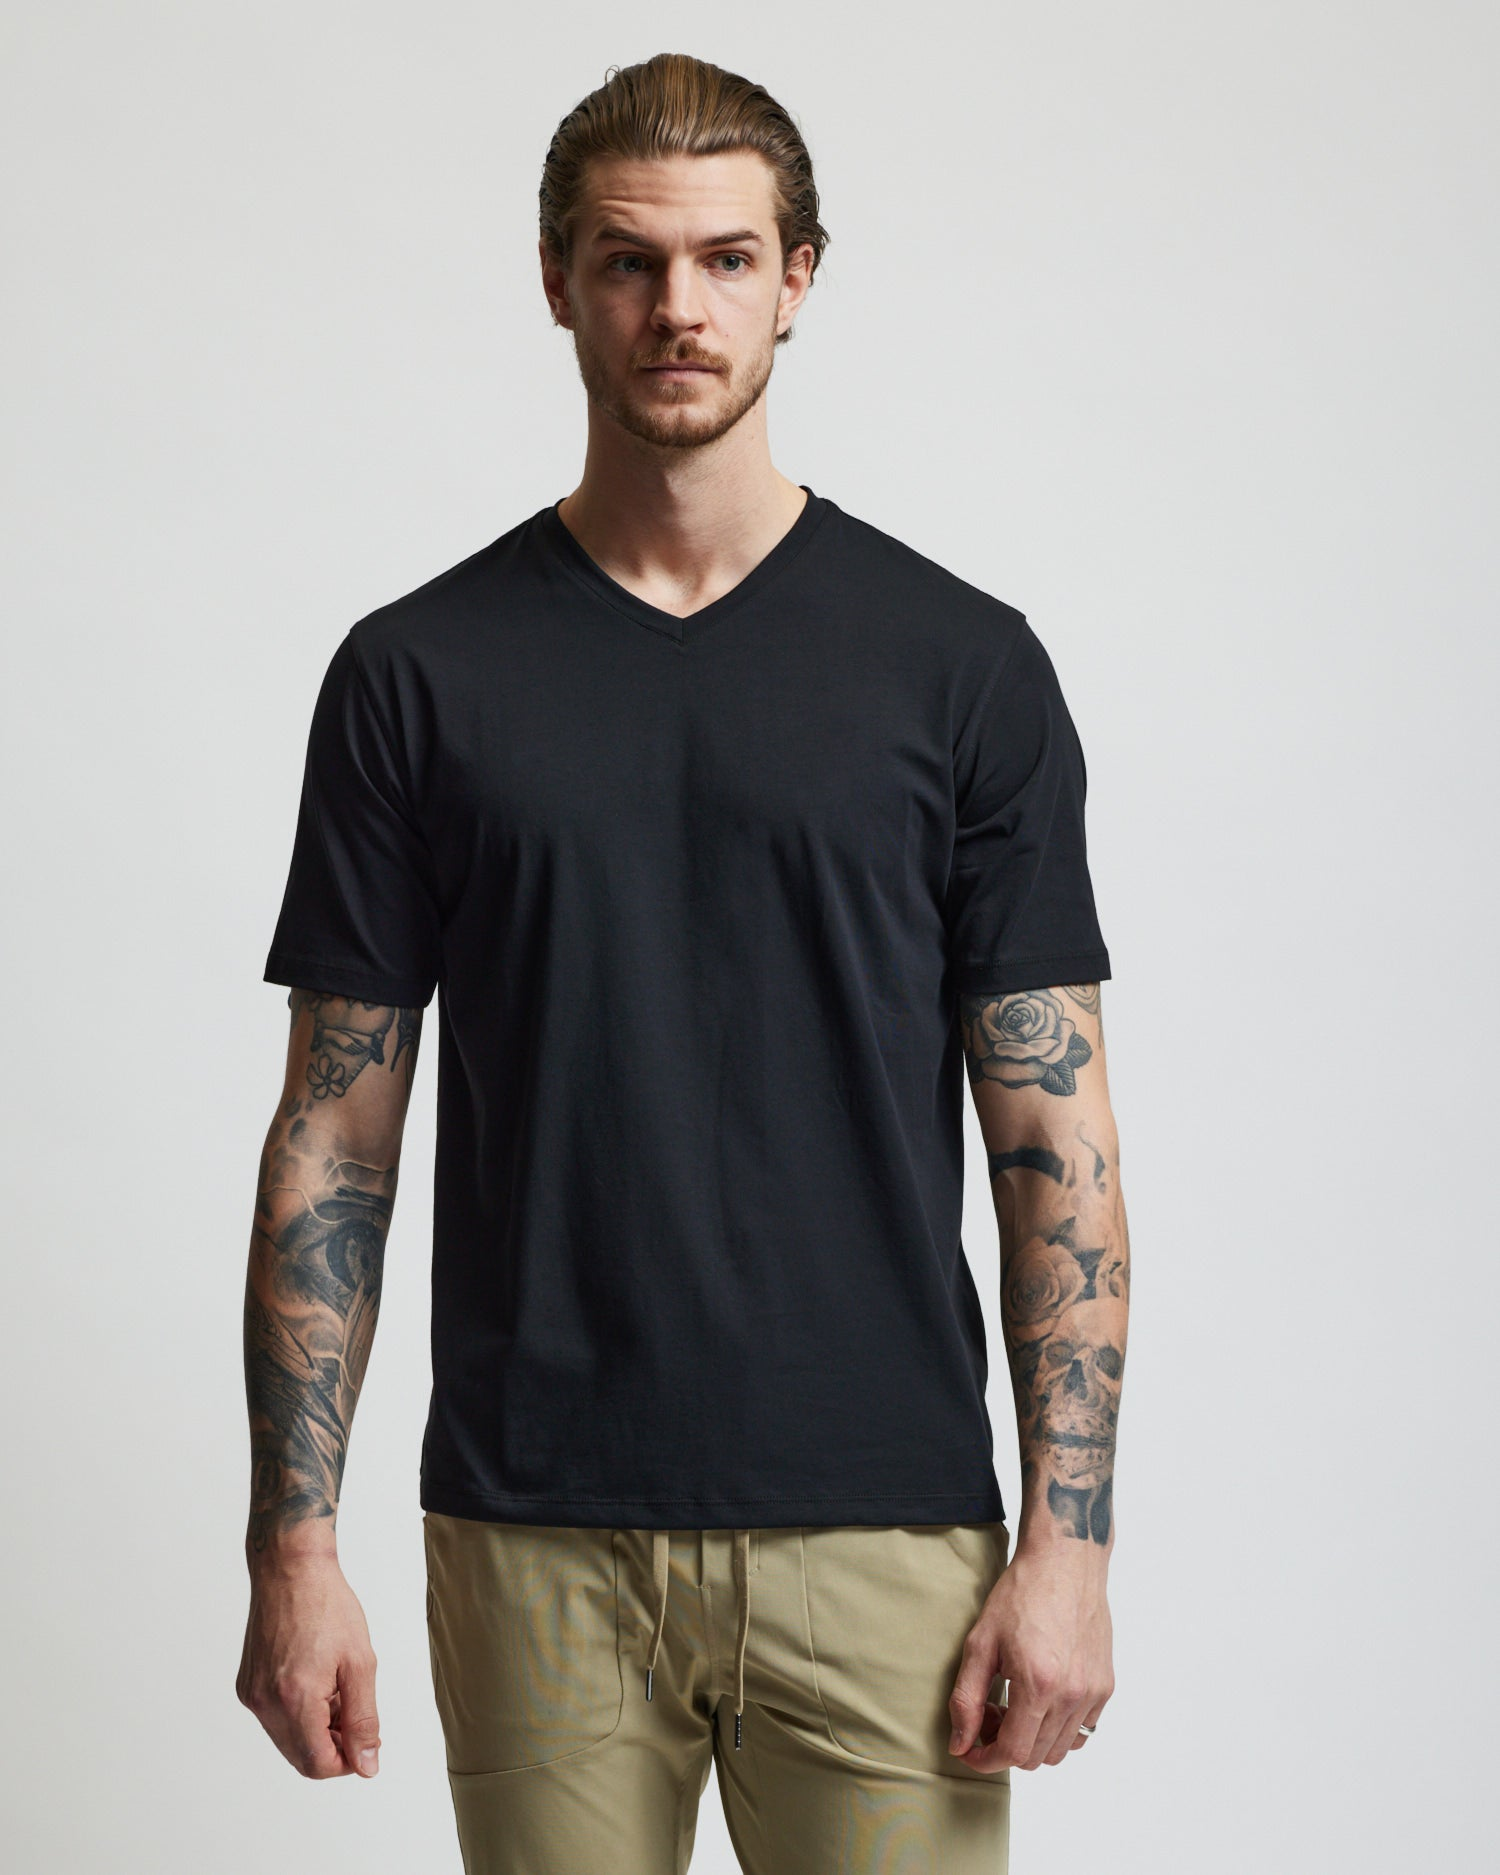 V-Neck T Shirt - Black